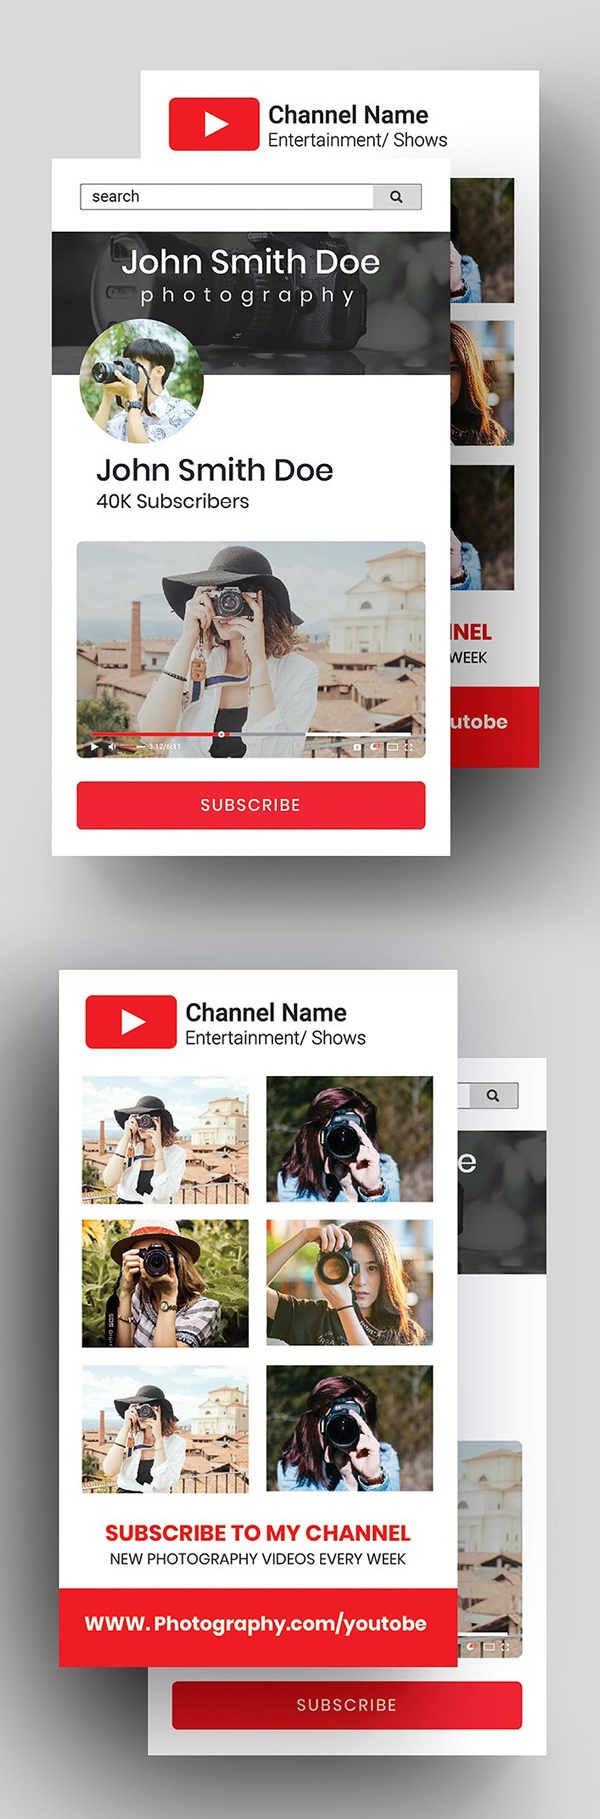 YouTube Business Card Template Design